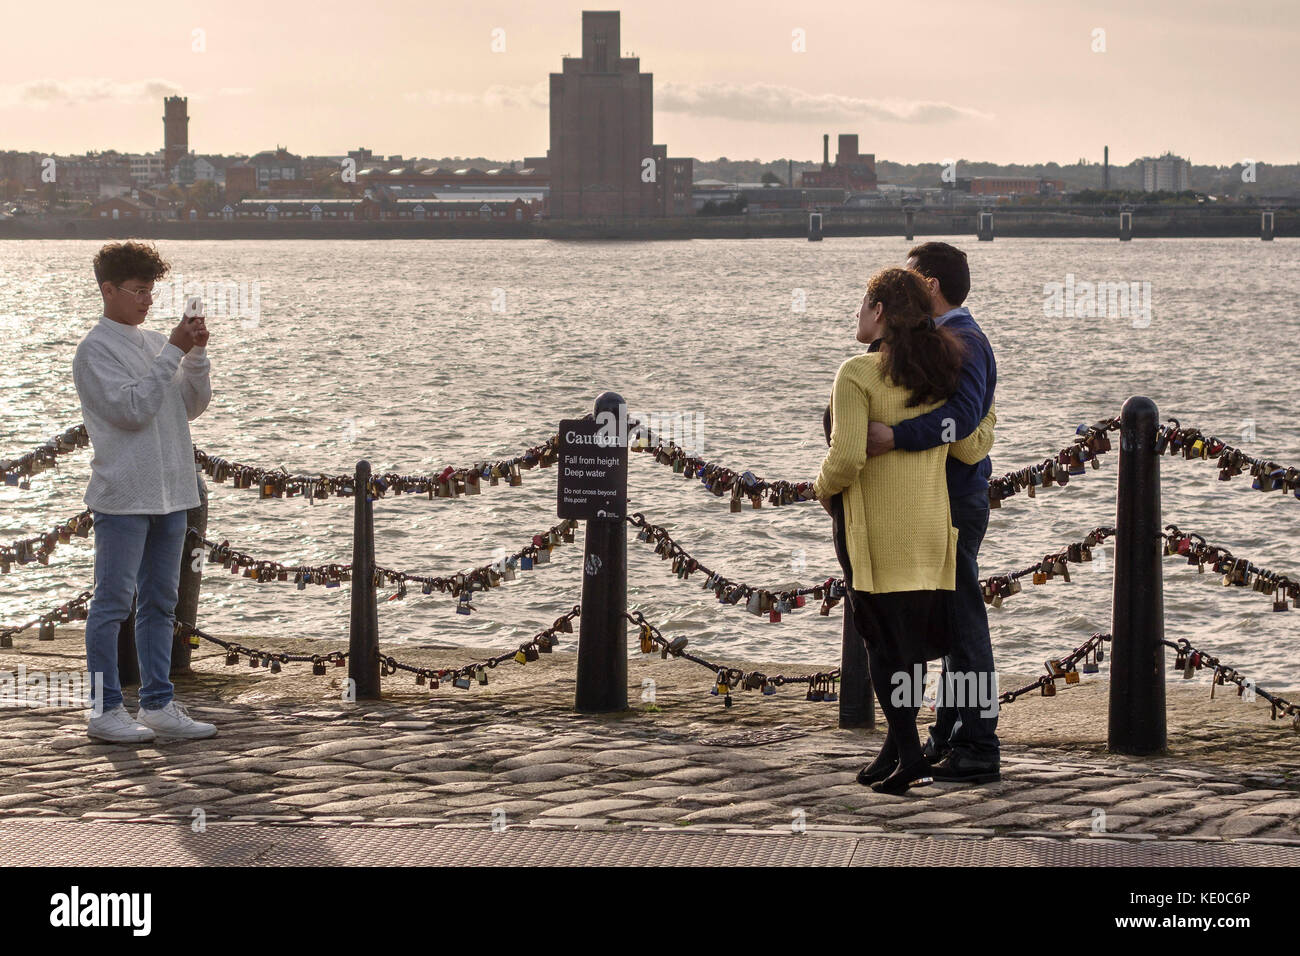 Pier Head, Liverpool, UK. A couple have their photograph taken beside the River Mersey. The railings are covered - Stock Image